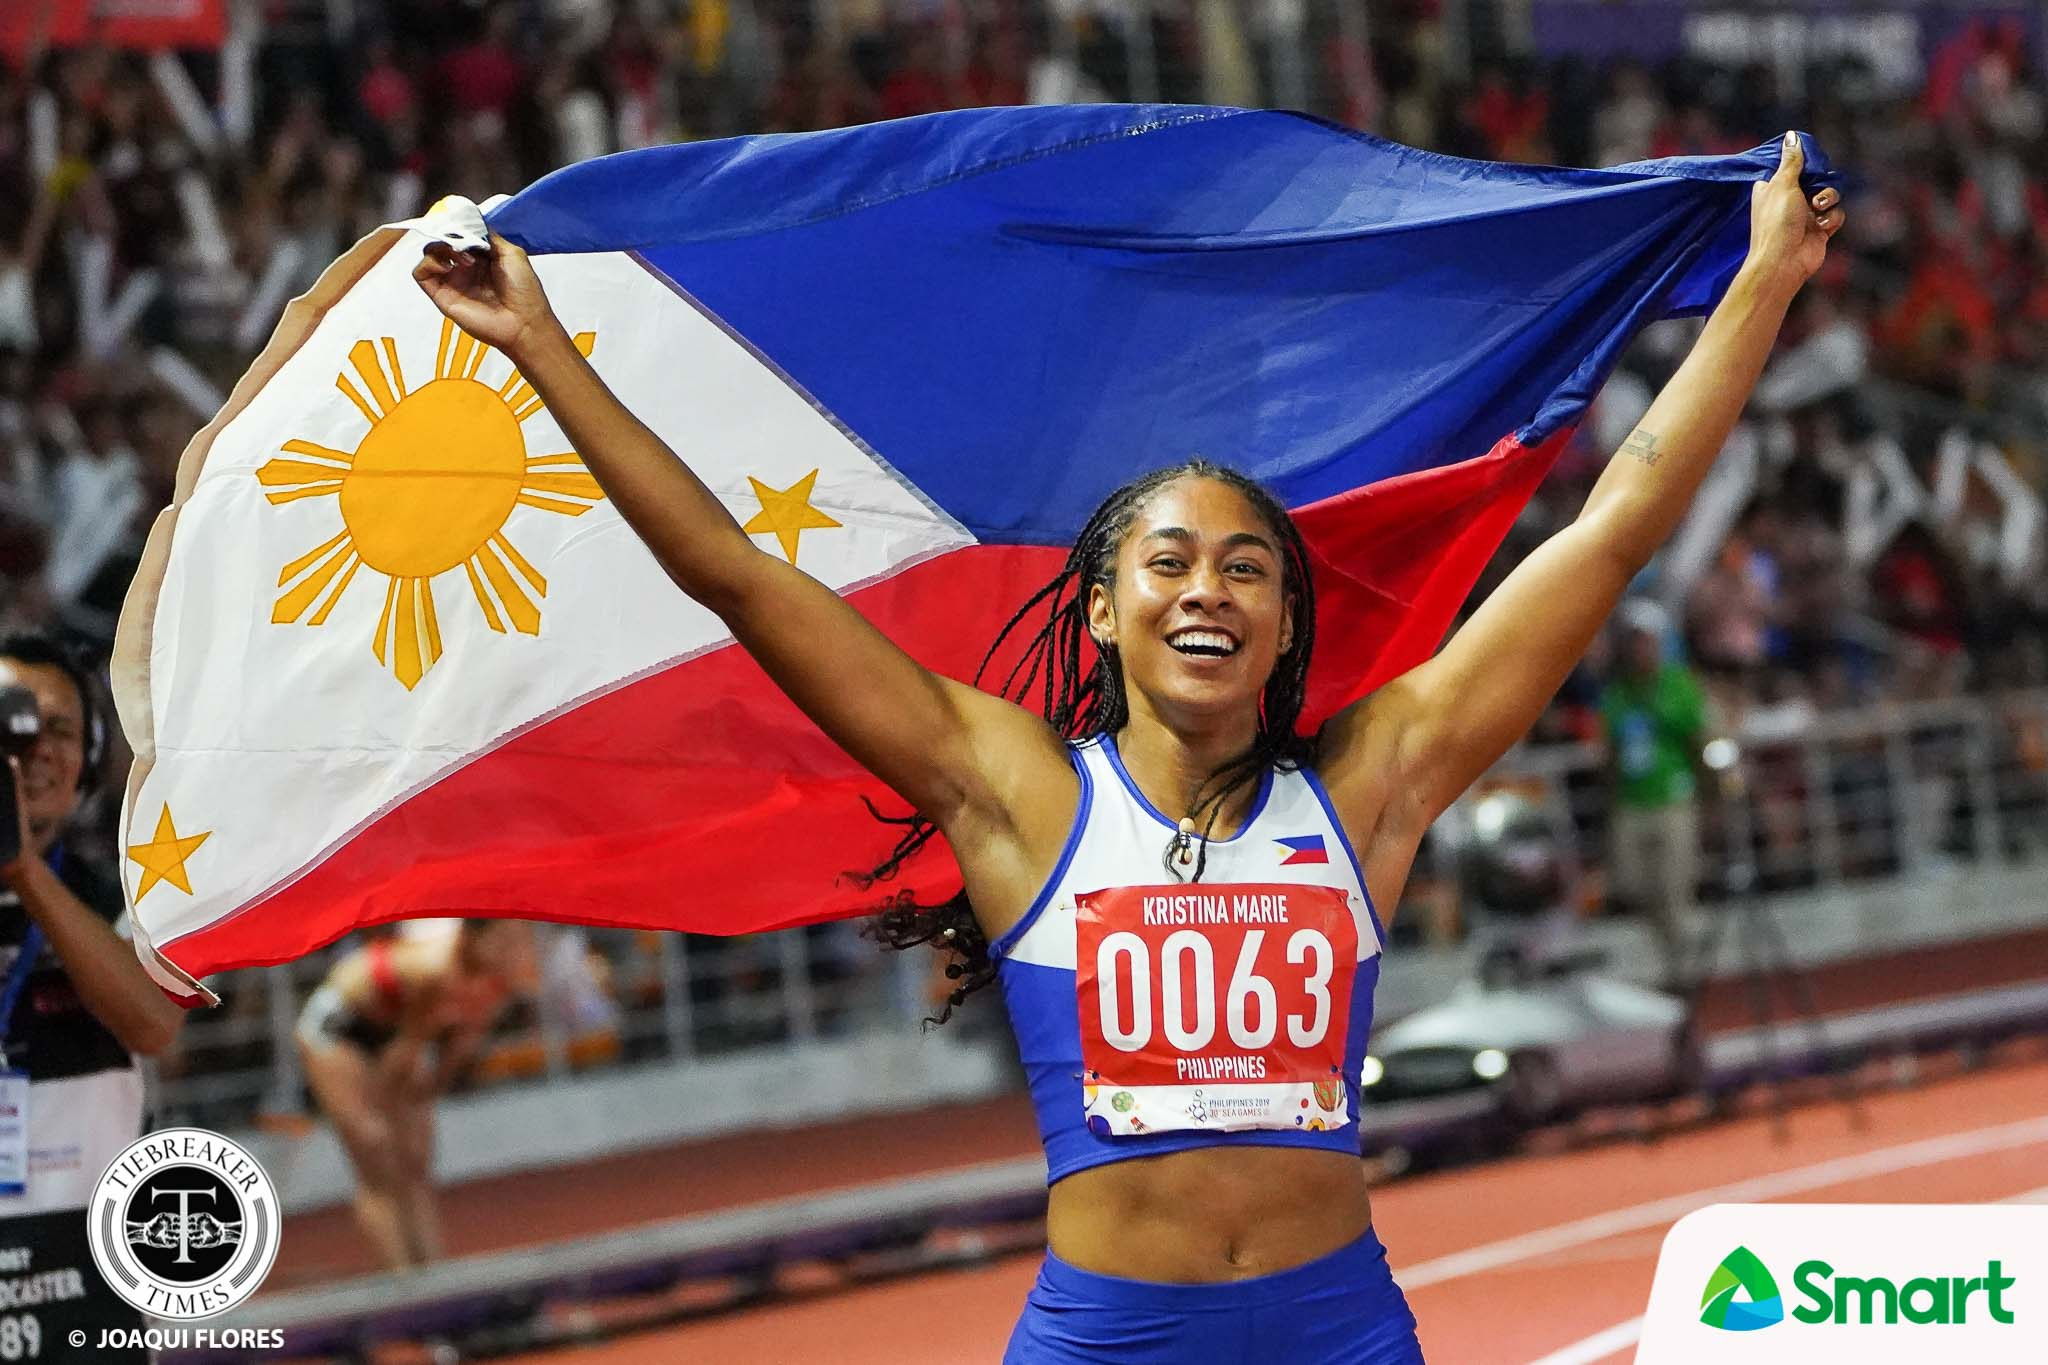 SEAG-Track-Knott-00739 Midlife Halftime Olympic Odyssey:  Kristina Knott races for her culture, for greatness 2020 Tokyo Olympics Track & Field  - philippine sports news